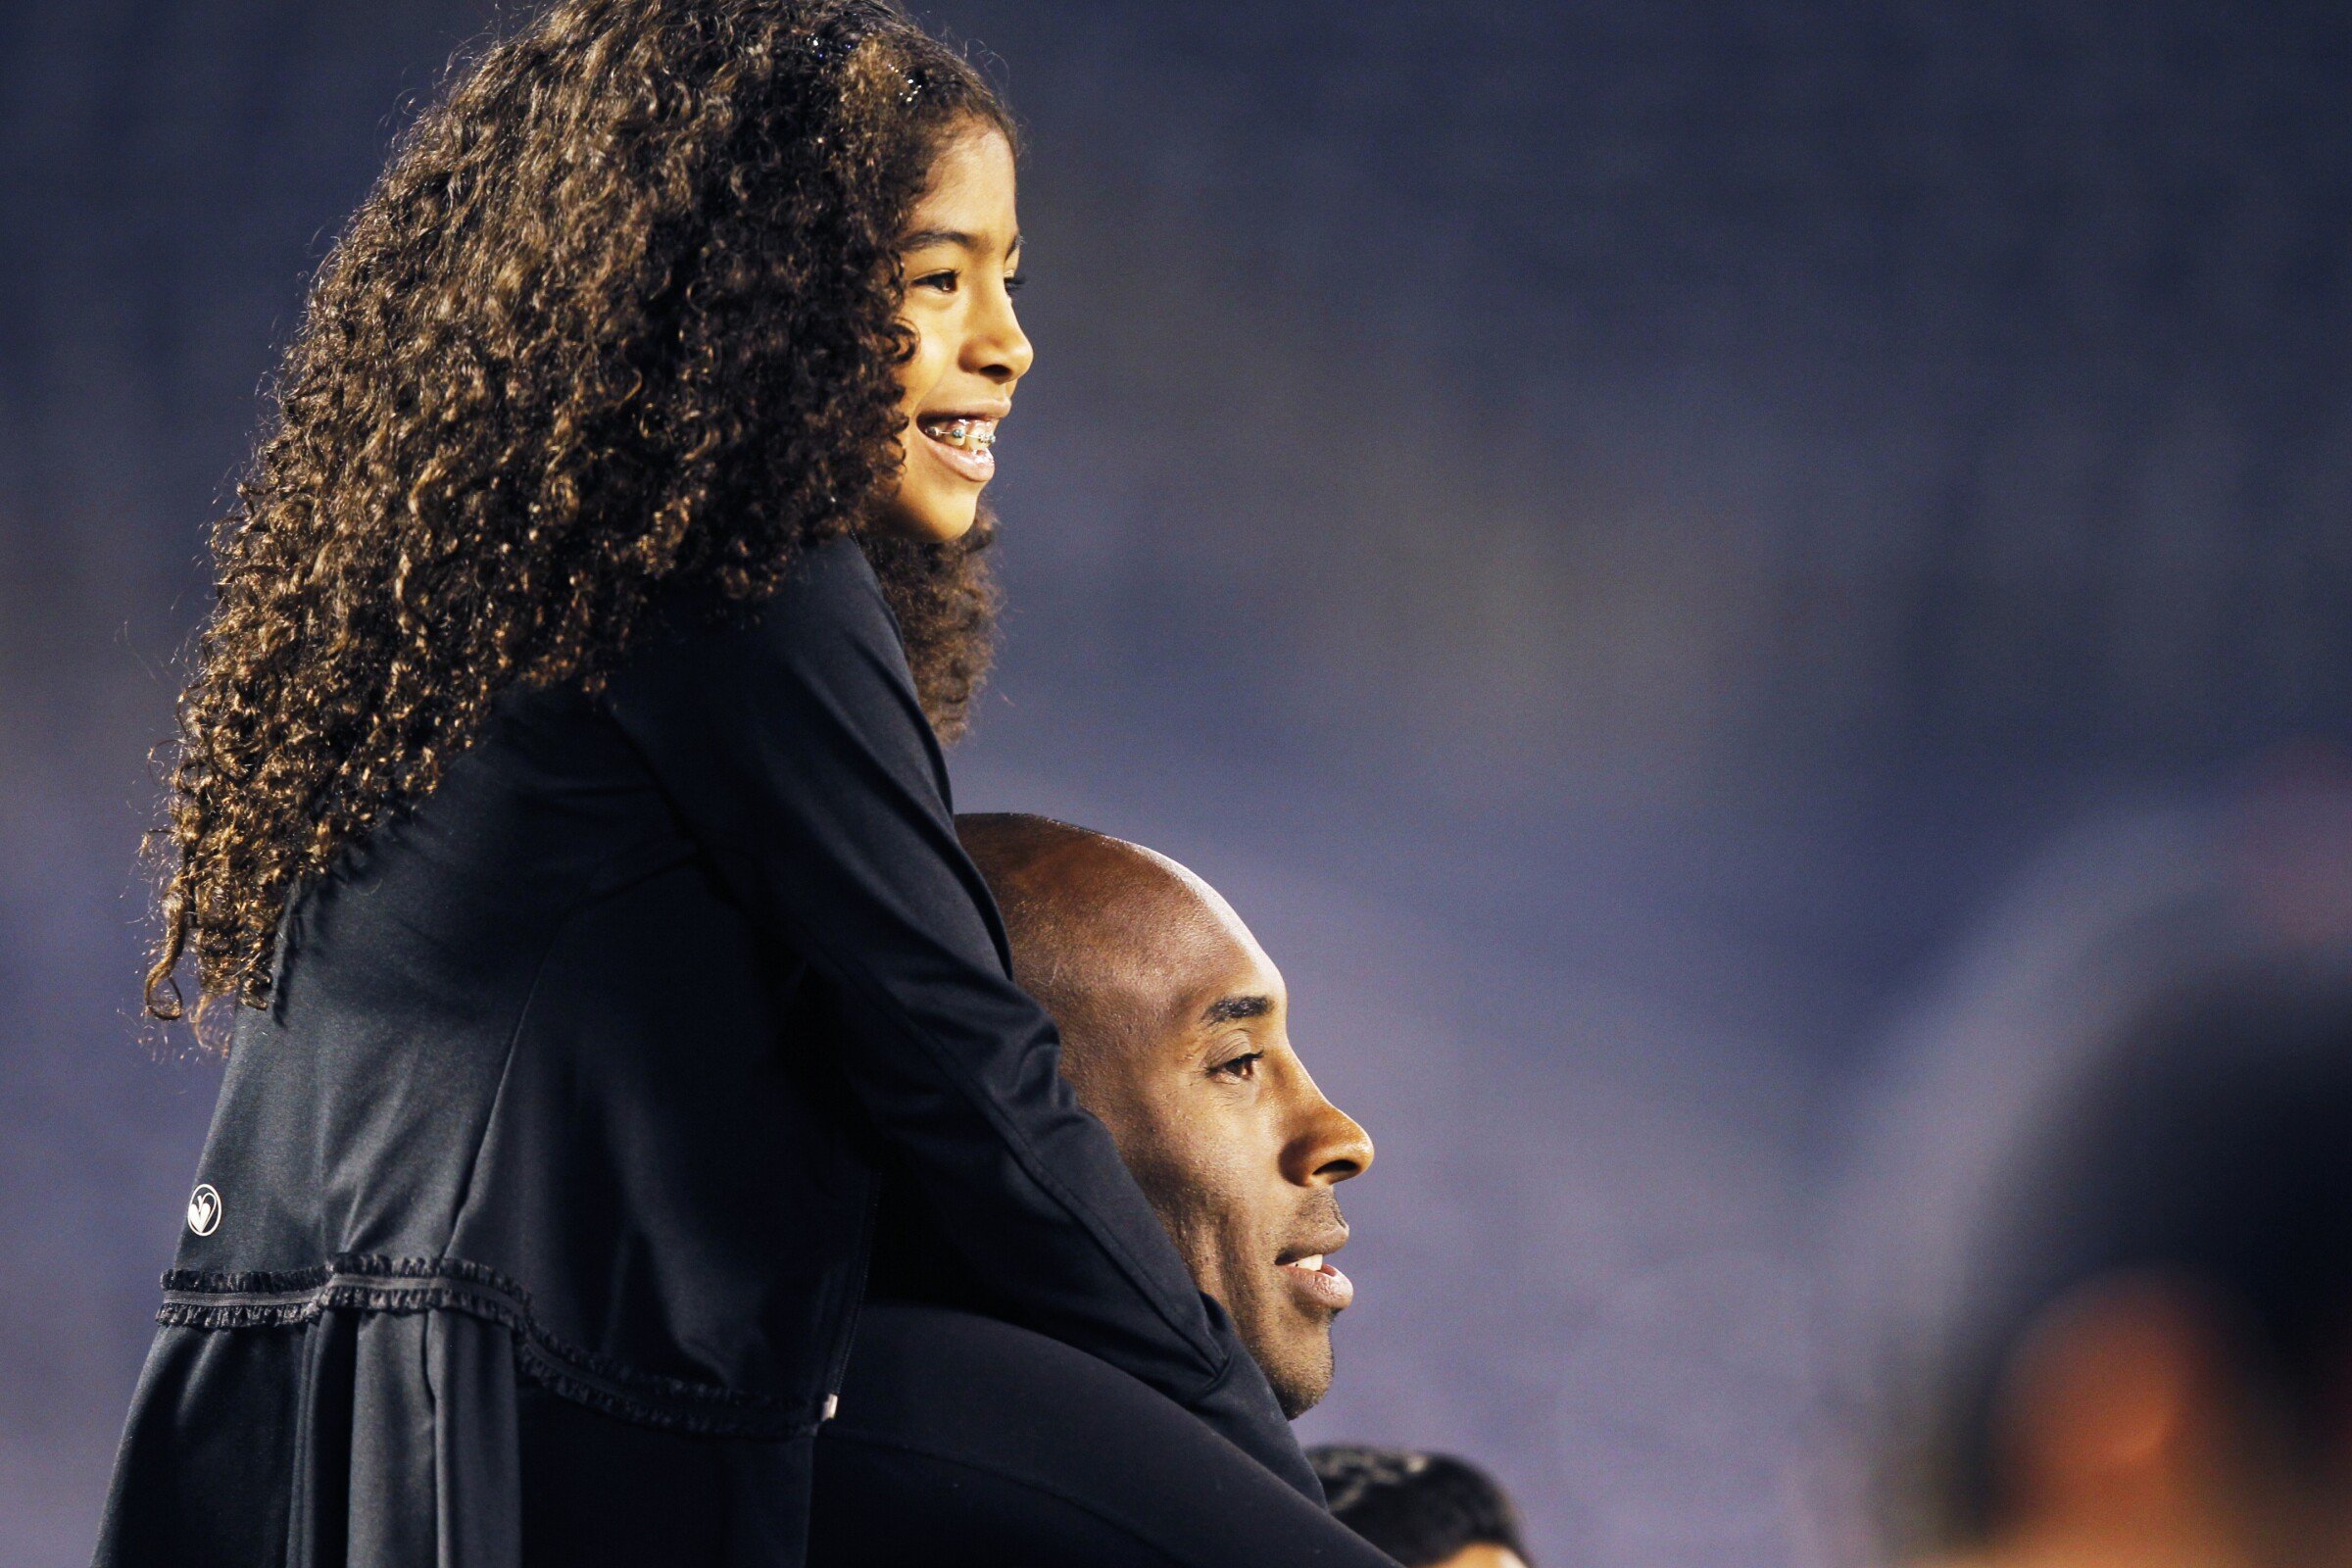 Kobe Bryant and his daughter Gianna Maria-Onore Bryant